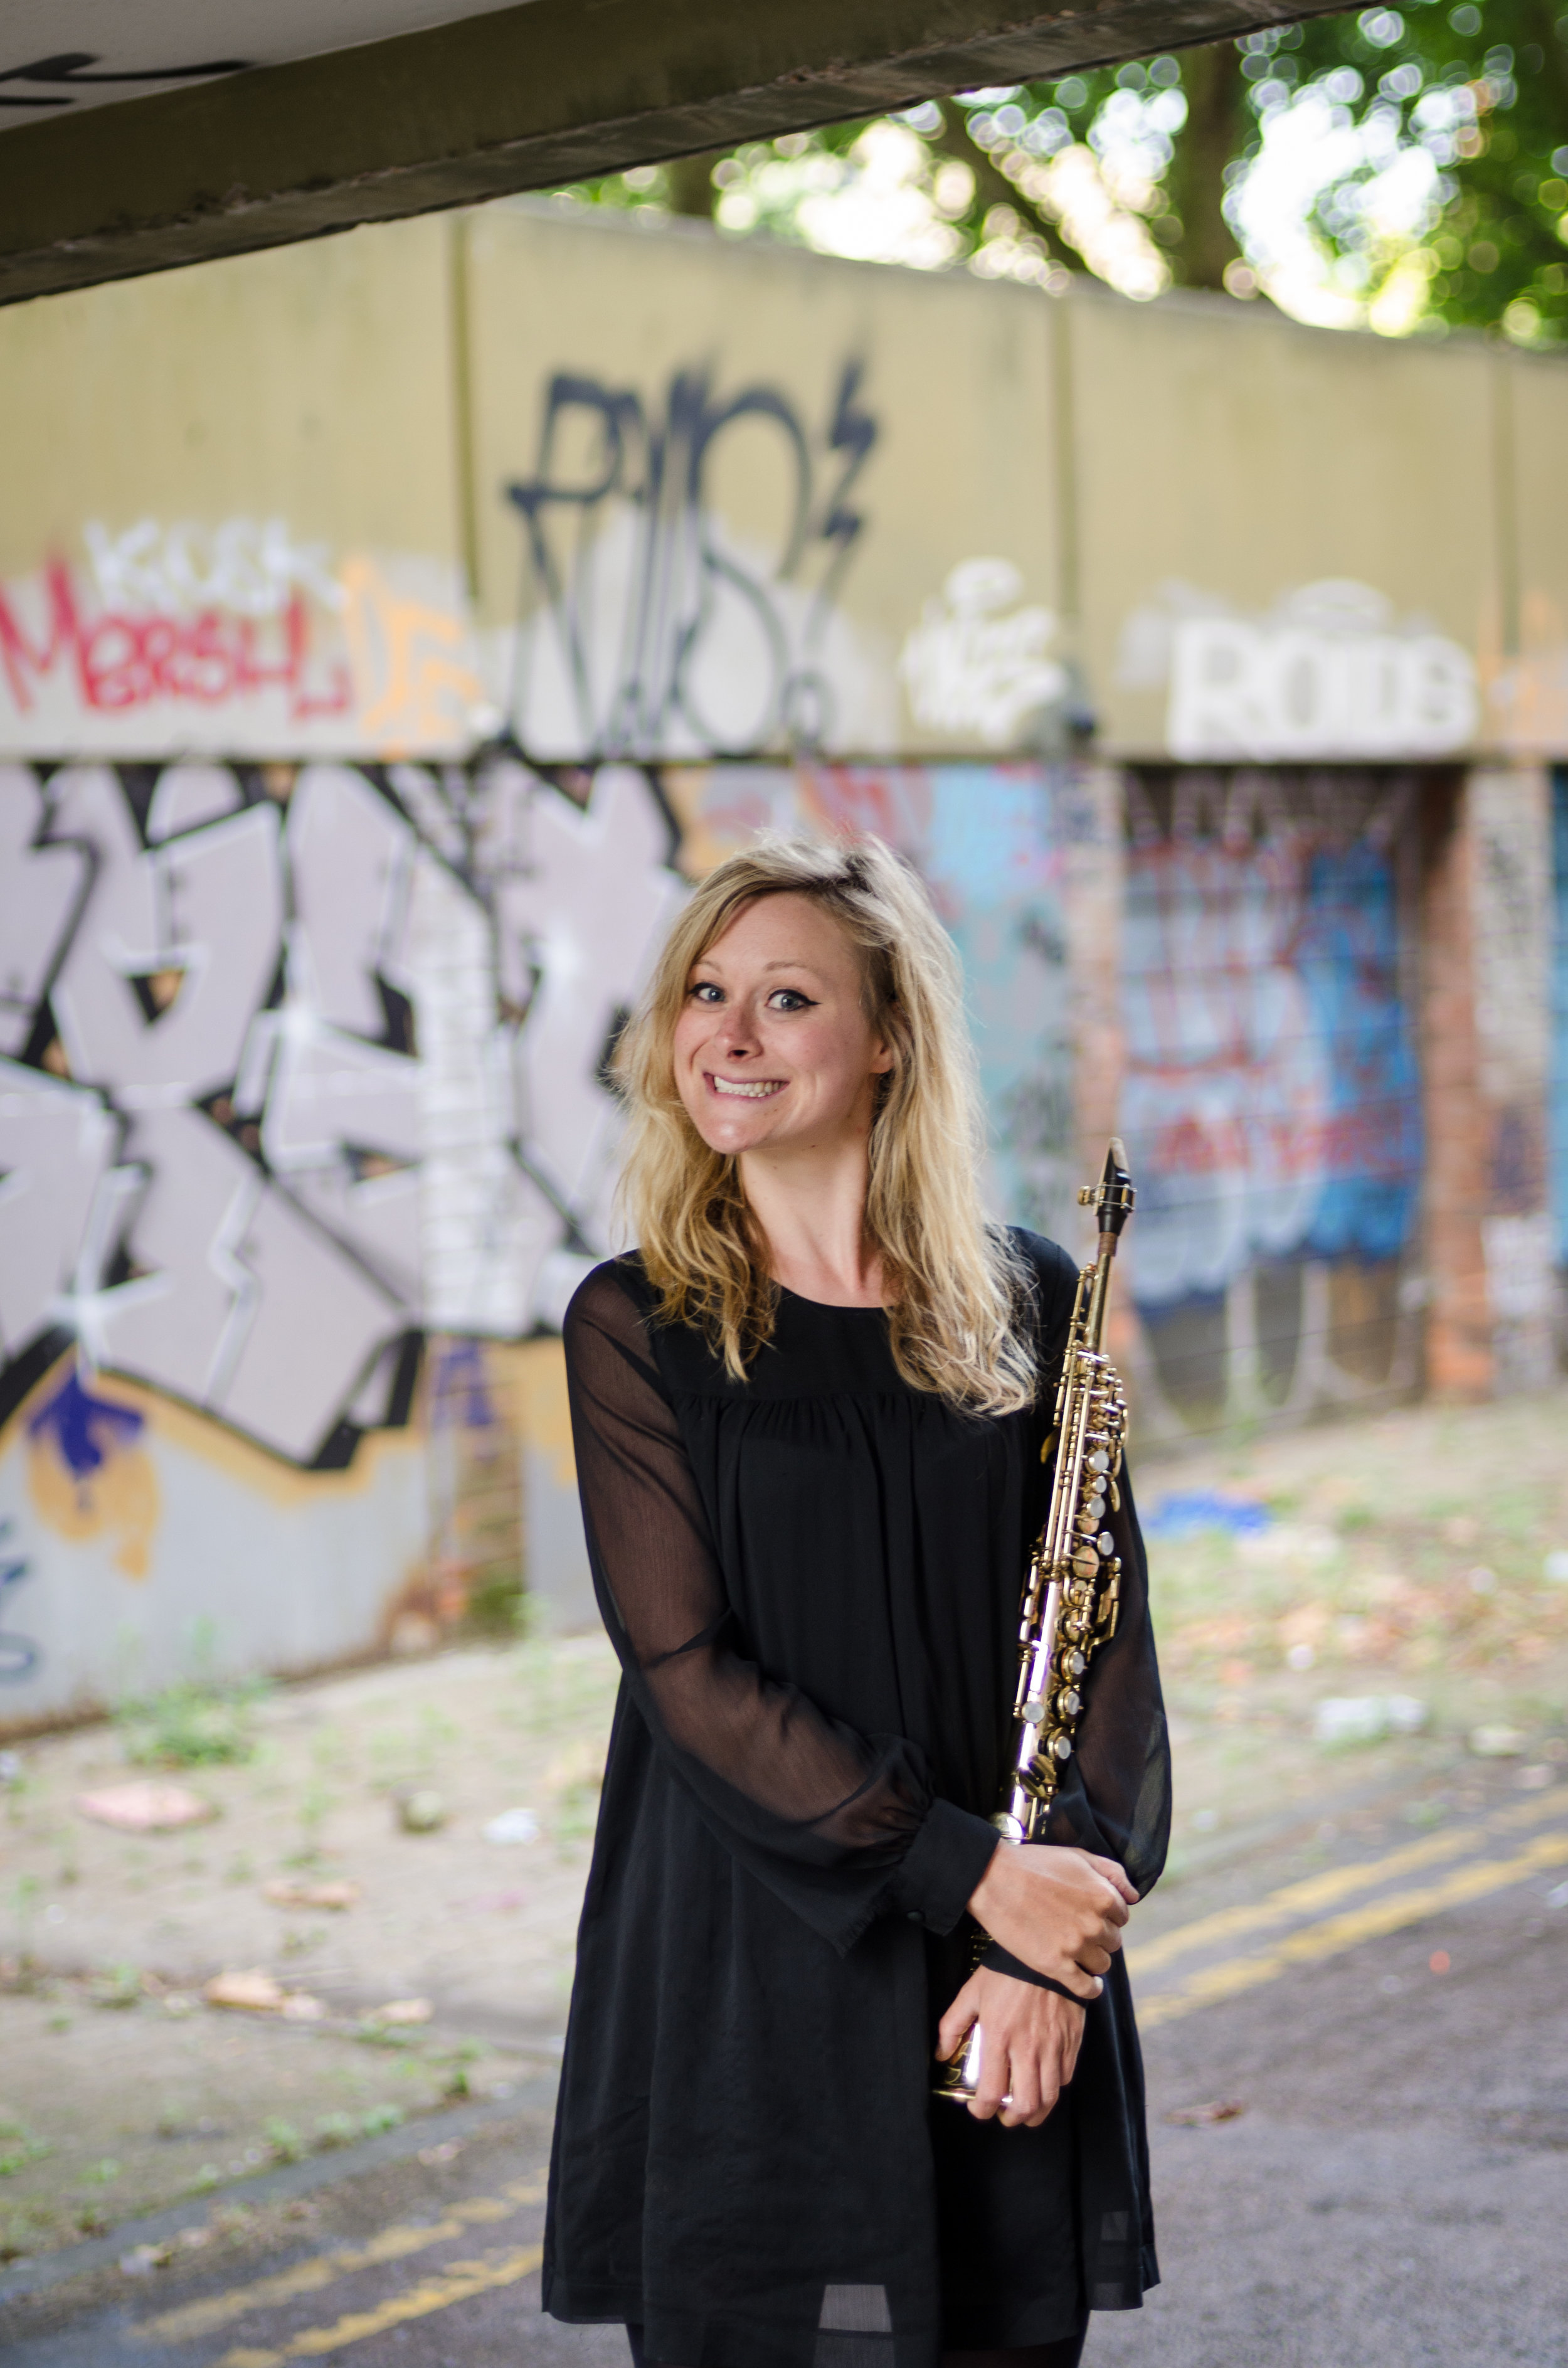 Naomi Sullivan - Naomi Sullivan studied at Cetham's School of Music, Royal College of Music and Northwestern University. She has been Head of Saxophone at the Royal Birmingham Conservatoire since 2008. She has been a member of the Paragon Quartet (BBC Radio 3 and Classic FM broadcasts), Zephirus Quartet (R.O.S.L prizewinners and Tunnell Trust Artists) and Flotilla (lead by Kyle Horch: www.flotilla.org.uk). She leads the quartet SYZYGY (Huddersfield Contemporary Music Festival, Park Lane Group Young Artist, Help Musician's UK award winners).As an orchestral musician, Naomi has worked for BCMG, CBSO, BBC Scottish Symphony Orchestra, Halle Orchestra, Aurora Orchestra, Piccadilly Dance Orchestra, The Opera Group, Birmingham Royal Ballet, Chineke, and more.She has given masterclasses at a number of institutes including the Royal College of Music, Trinity Laban, Chetham's School of Music, Purcell School, 2017 Andorra SaxFest, University of Texas, the Royal Conservatoires of Amsterdam, Antwerp, Brussels, Ferrara, Fermo and Pesaro.